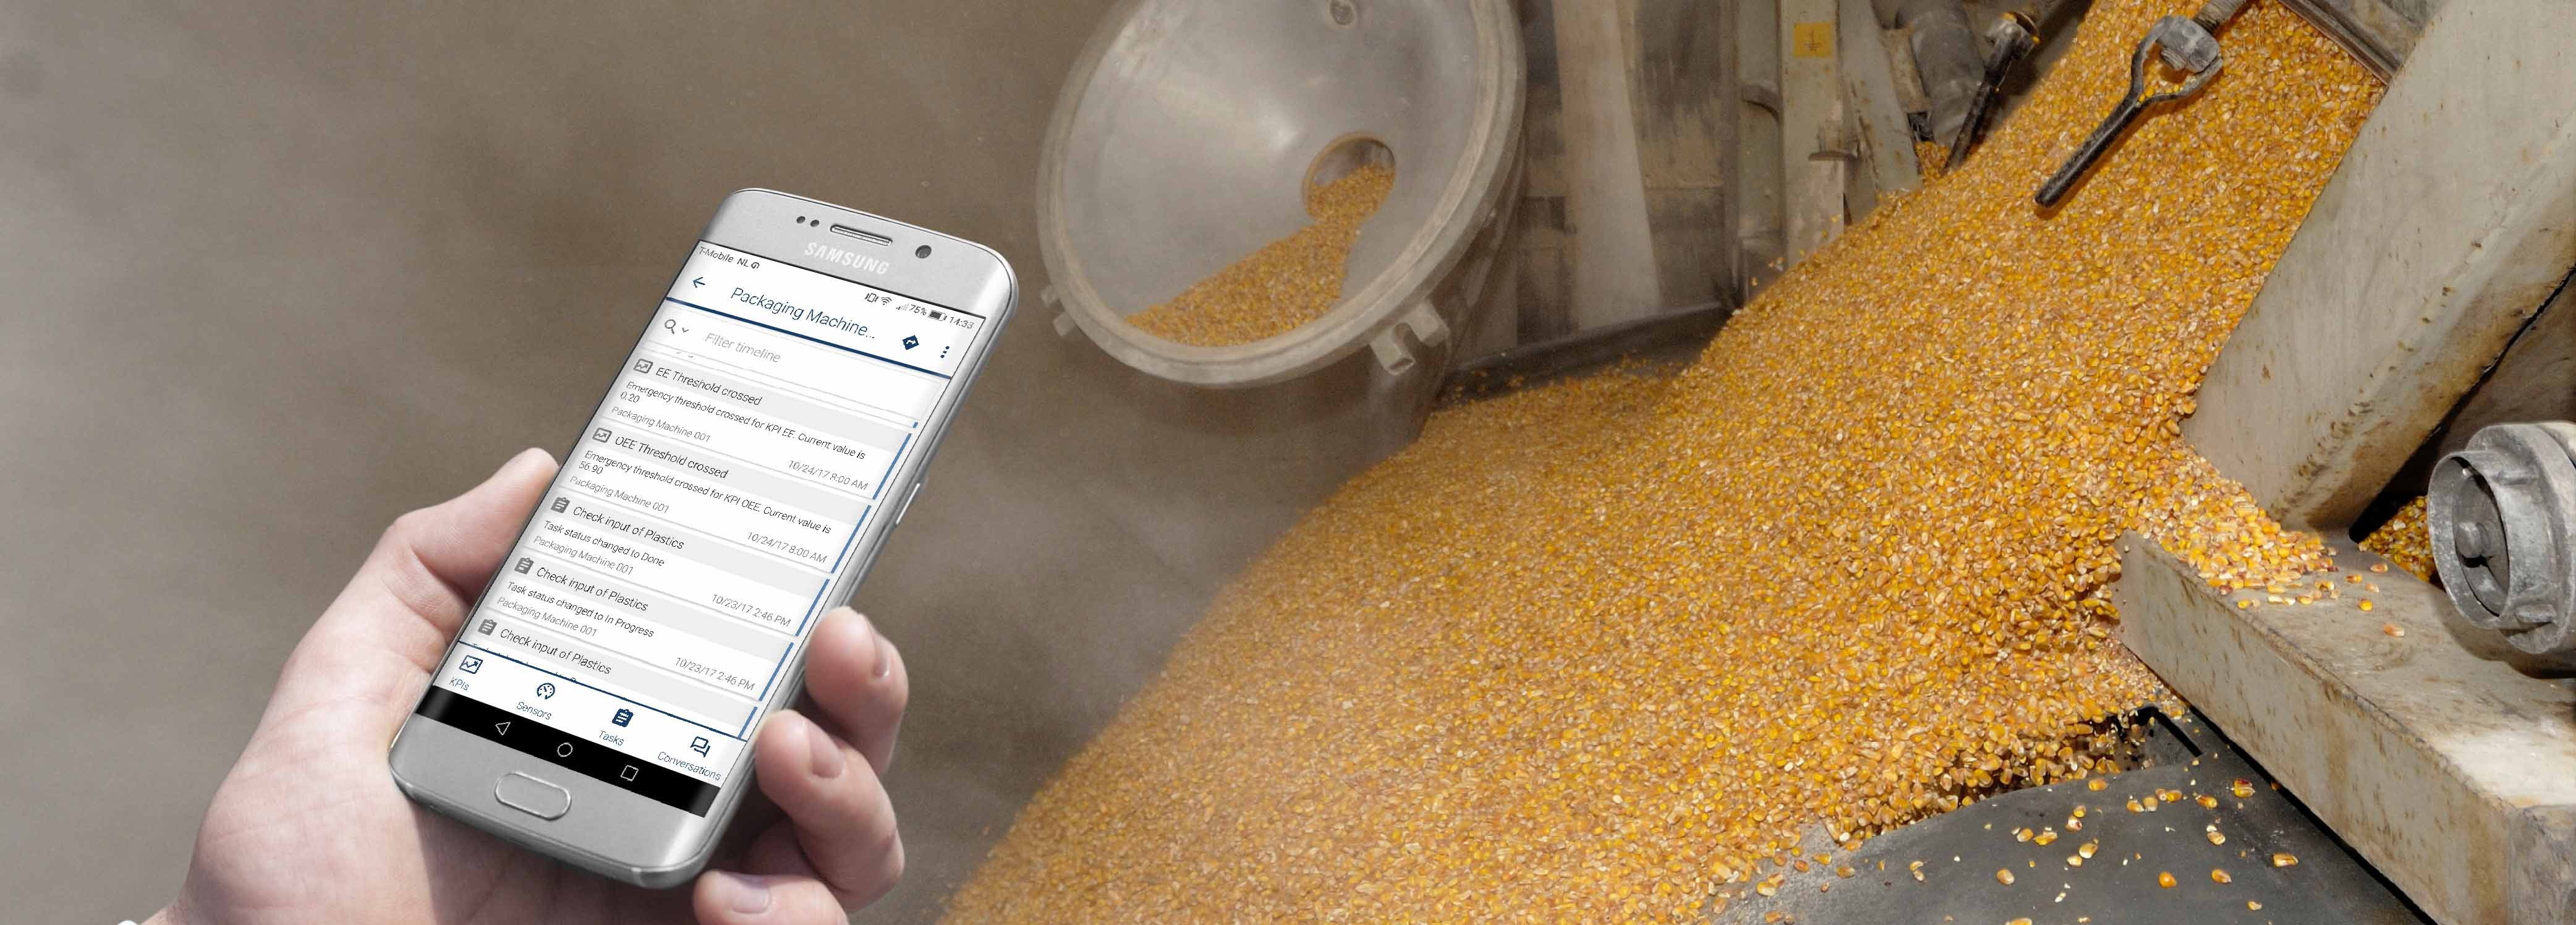 innius used on Android device in Feed factory